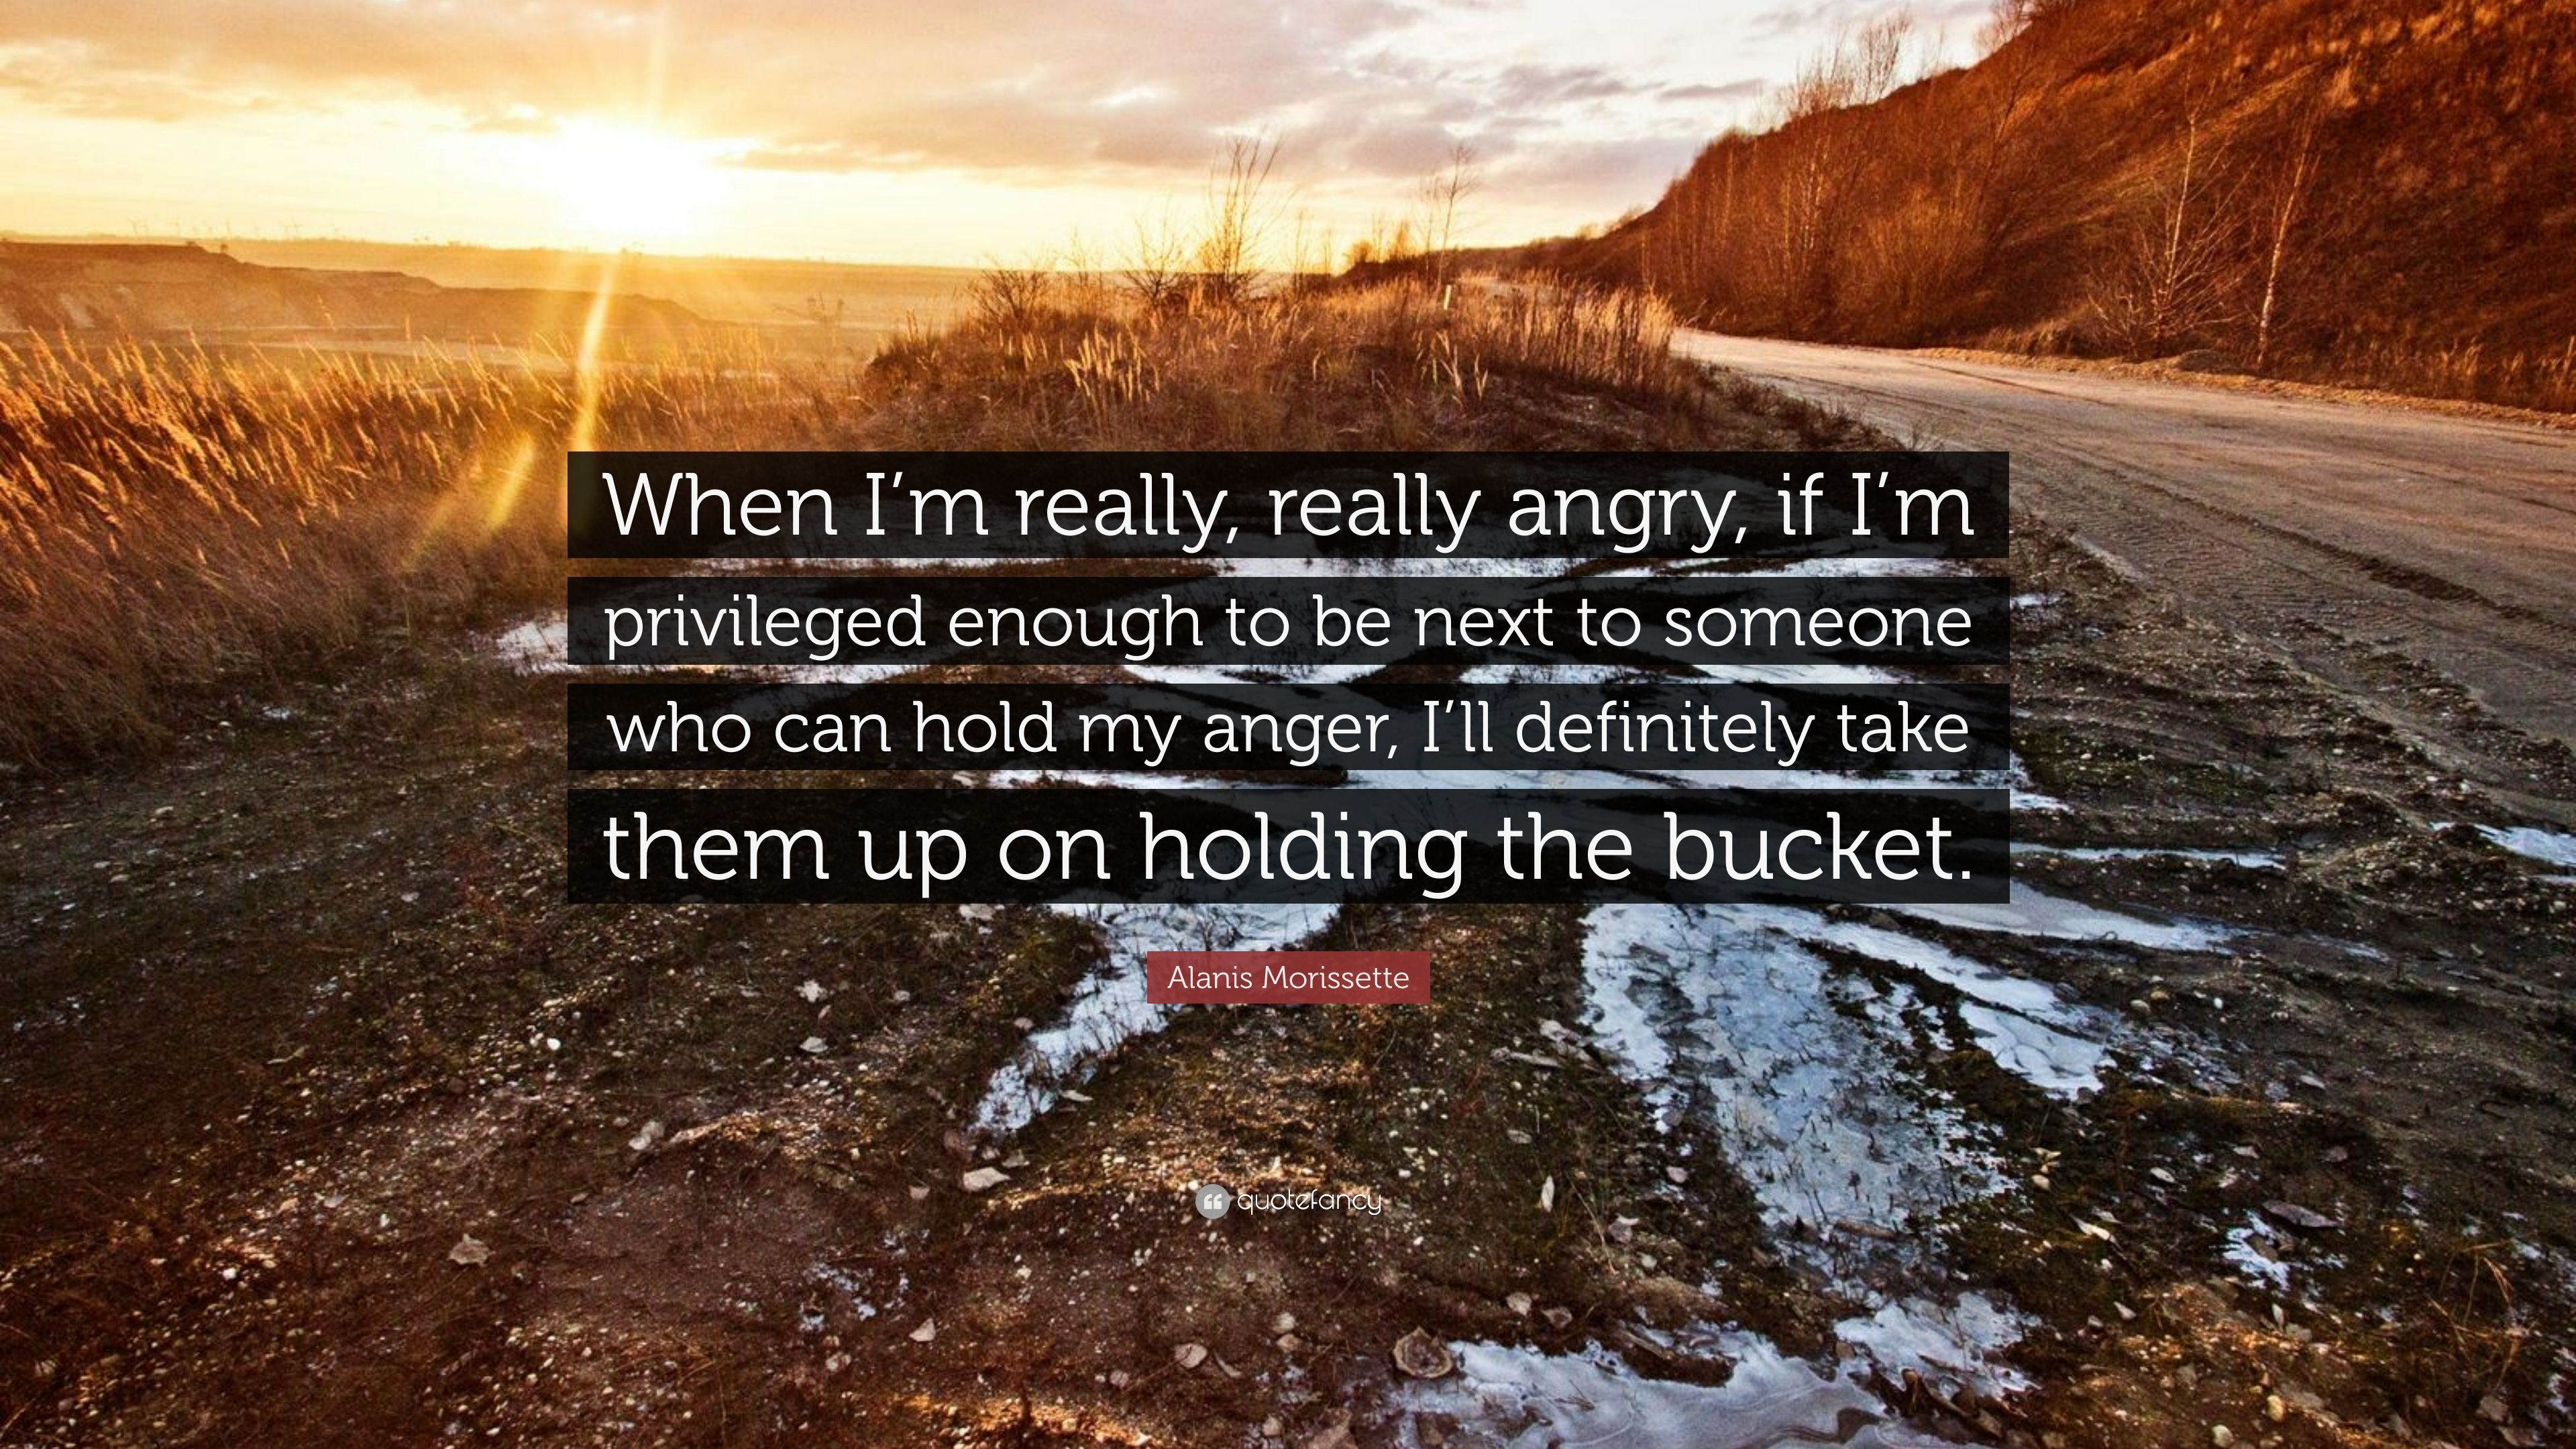 pictures Alanis Morissette: When someone says I'm angry, it's a compliment'